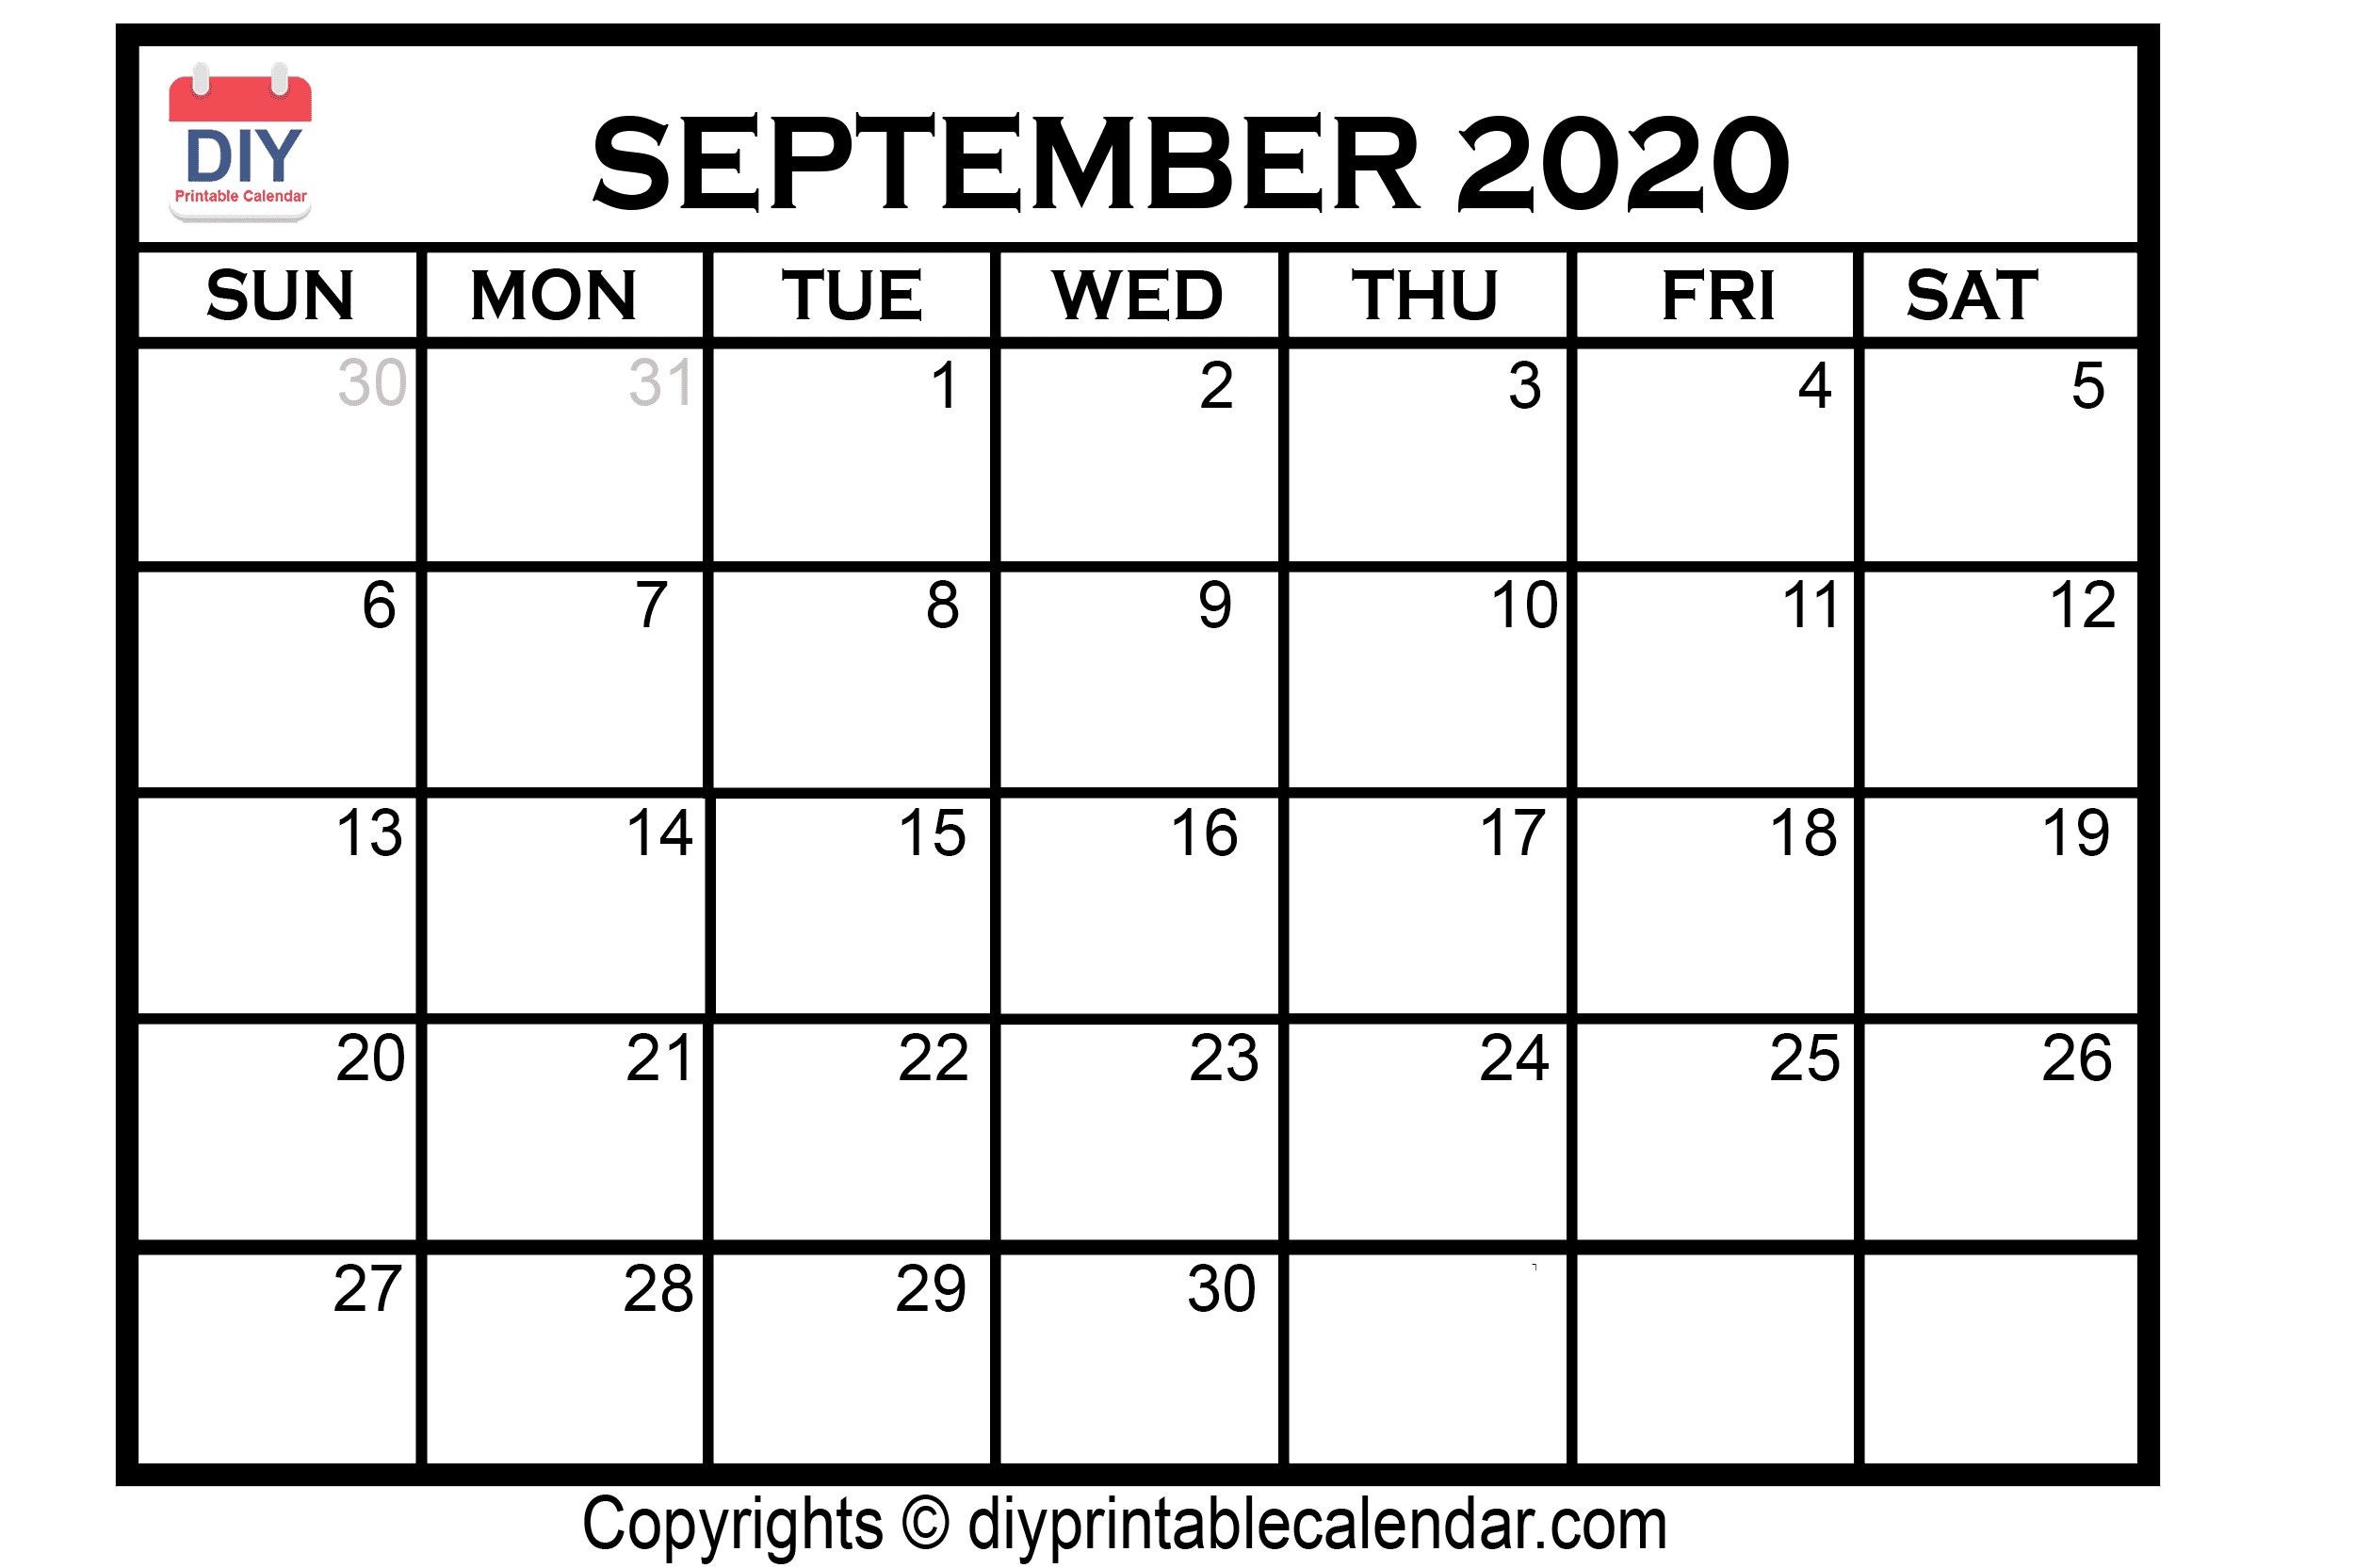 Download September 2020 Printable Calendar